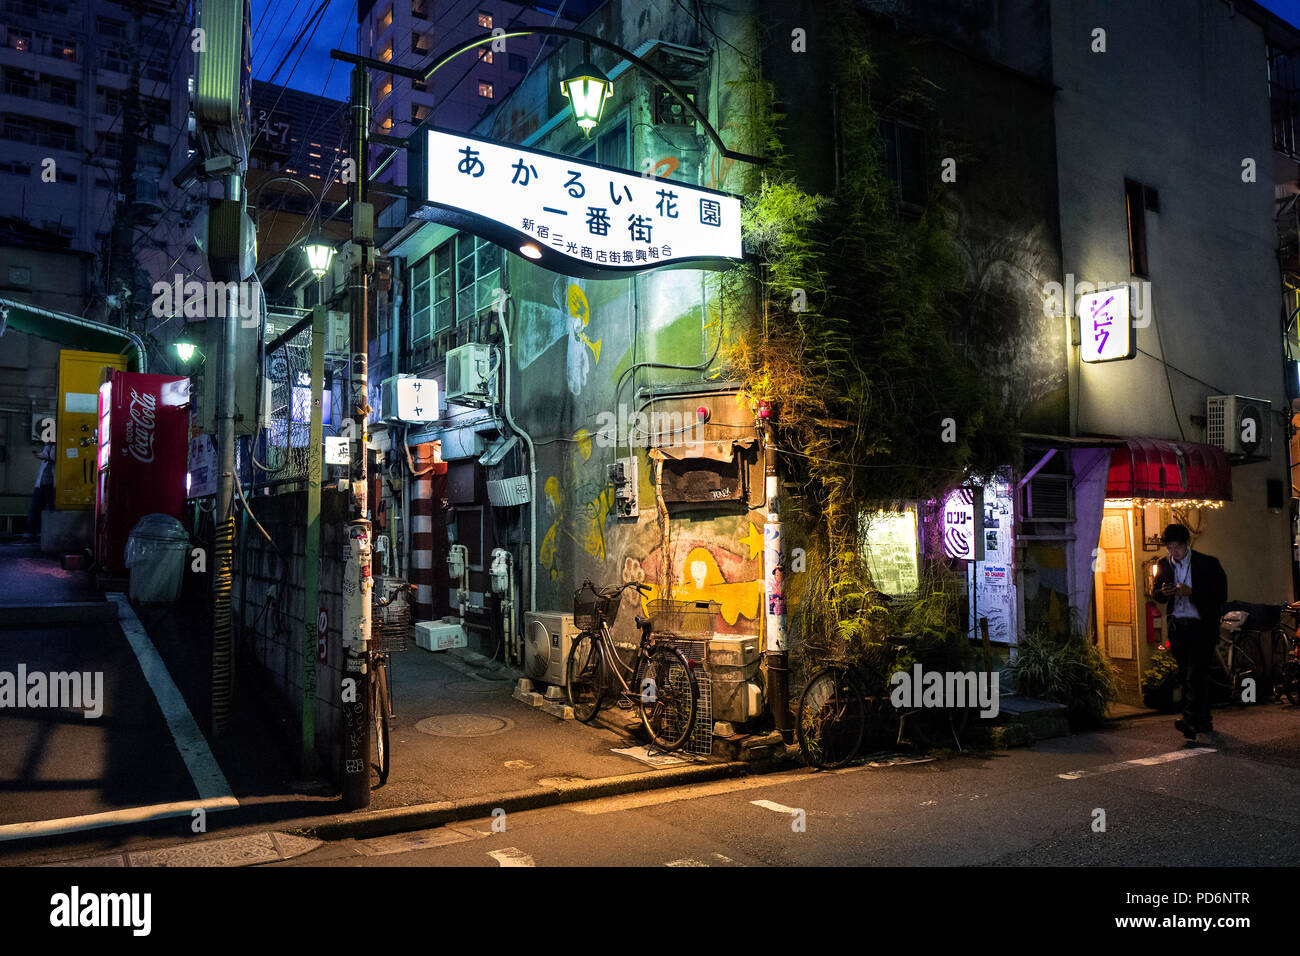 L'île de Honshu, Japon, Tokyo, Kanto, le Golden Gai district. Photo Stock